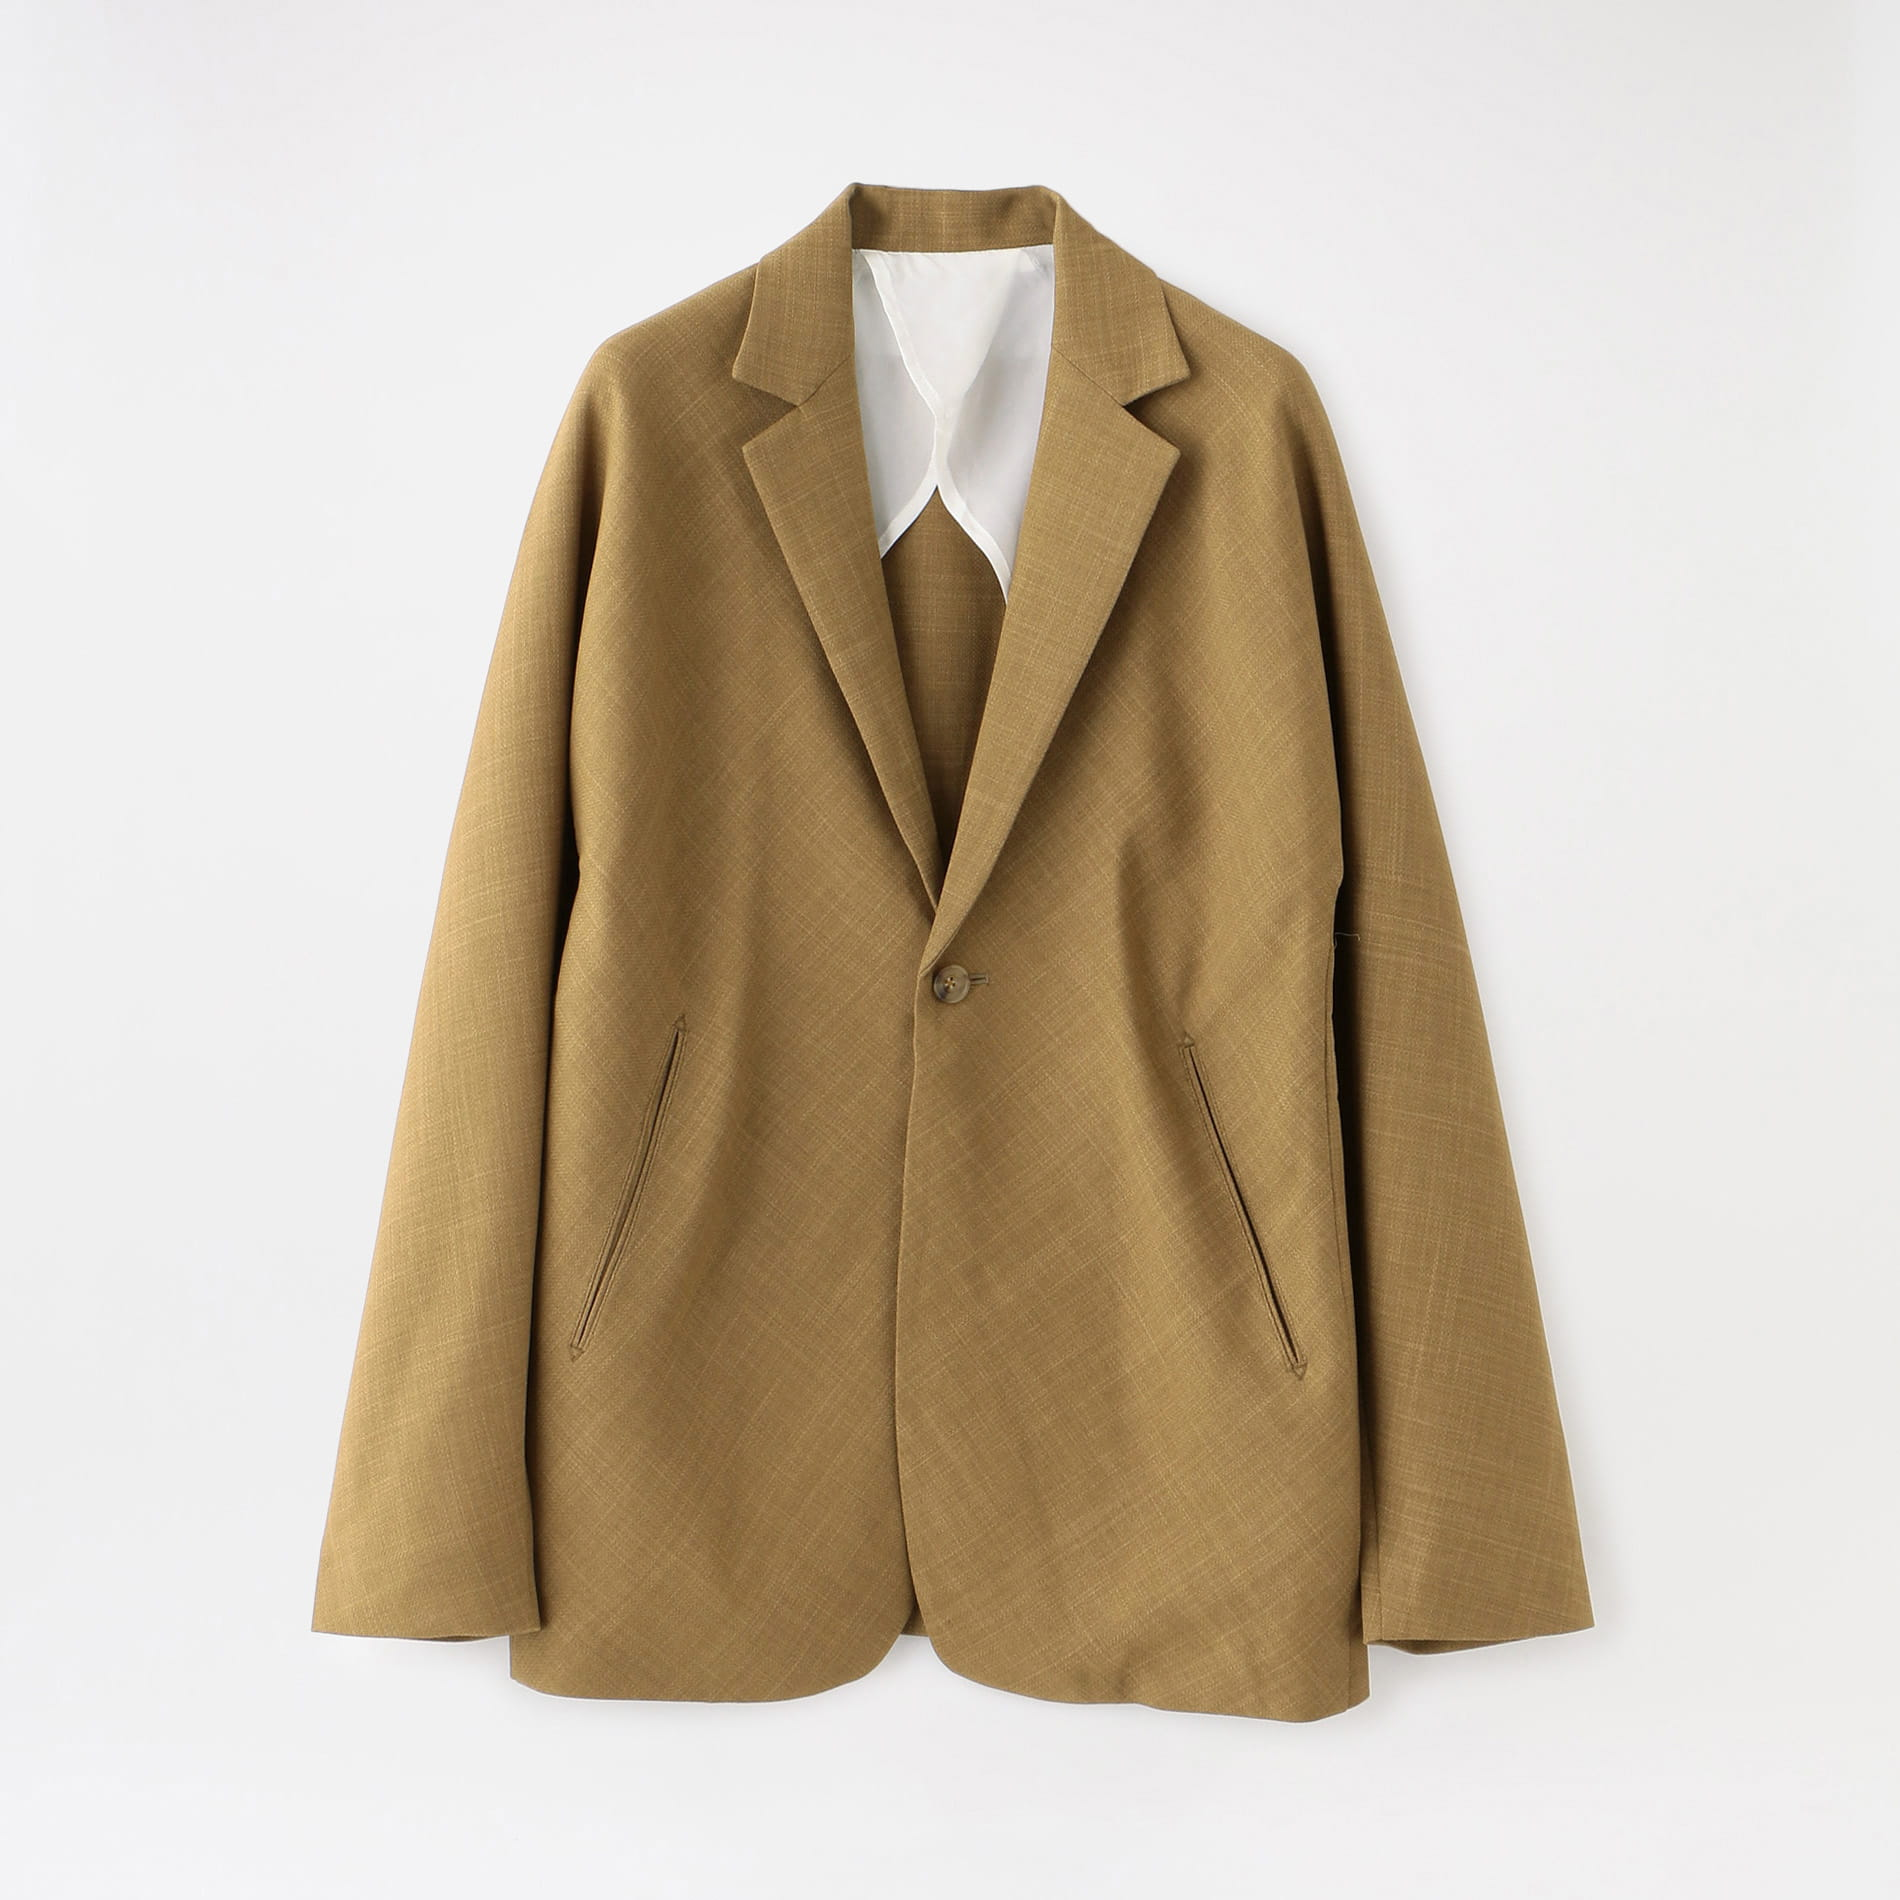 【Needles】WOMEN ジャケット Miles Jacket - Poly Dobby Twill IN040